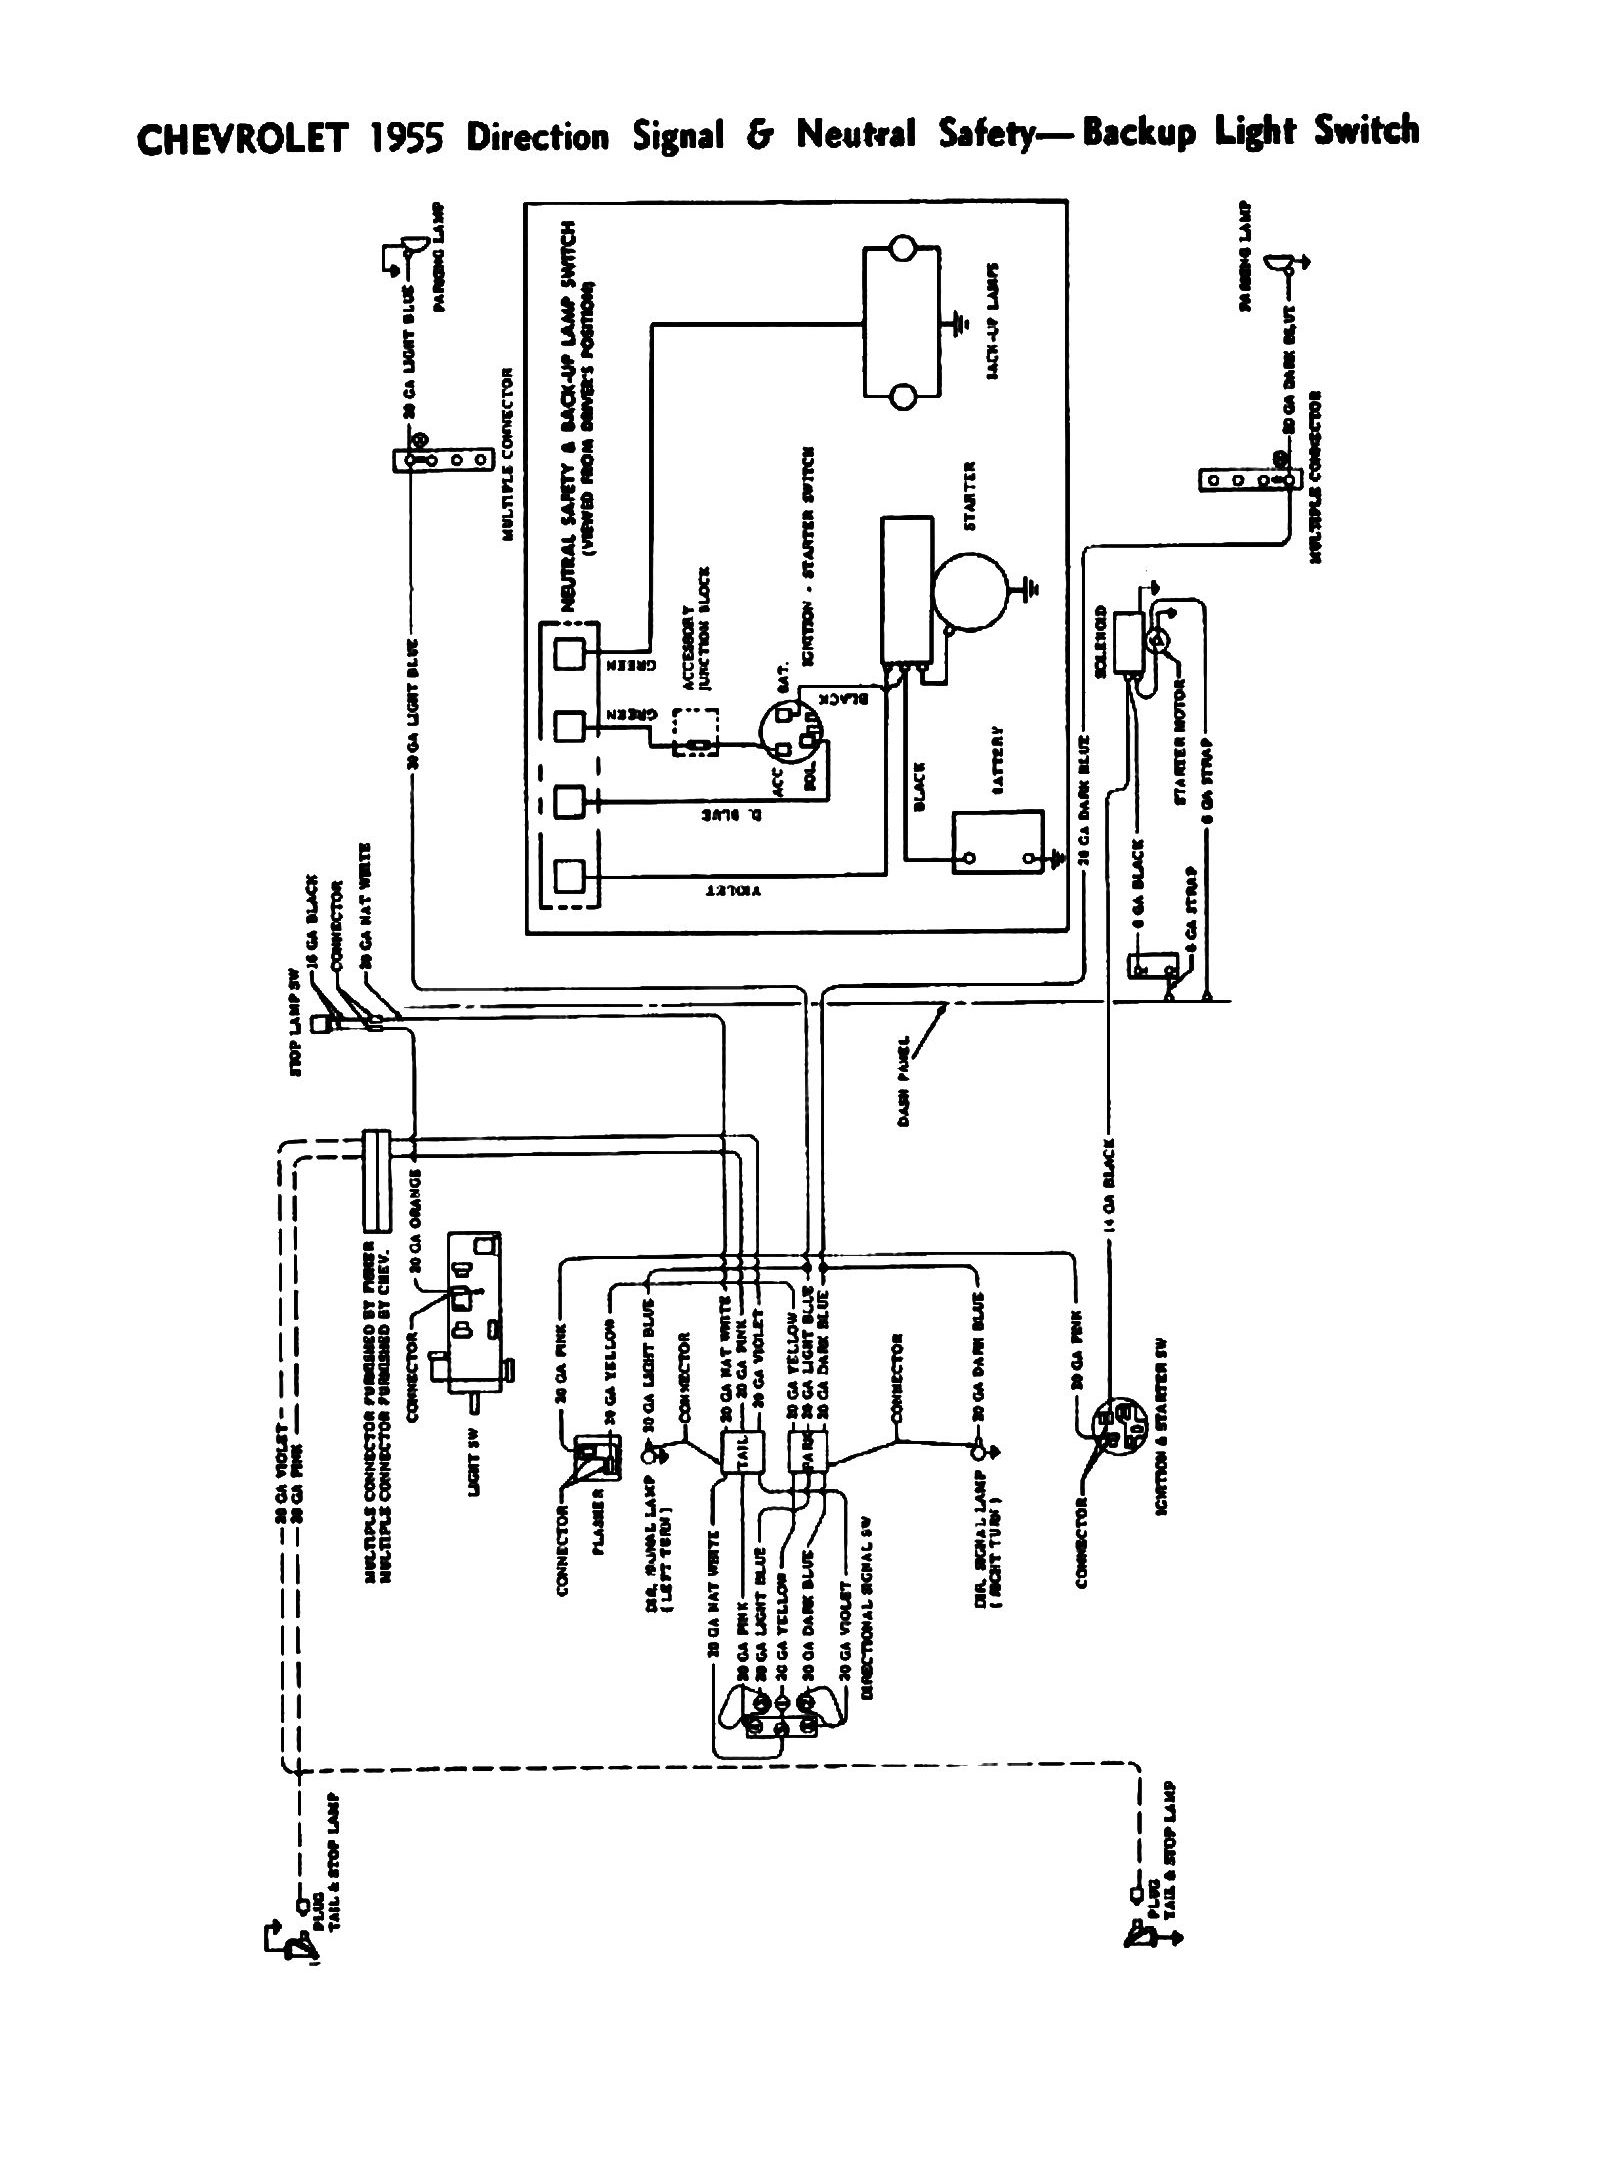 Control Panel Wiring Diagram also Forum posts additionally Kenmore Dryer Wiring Diagrams 600 furthermore Quailplug additionally 267122 83 Flh Need Oil Line Routing Diagram. on generator plug wiring diagram